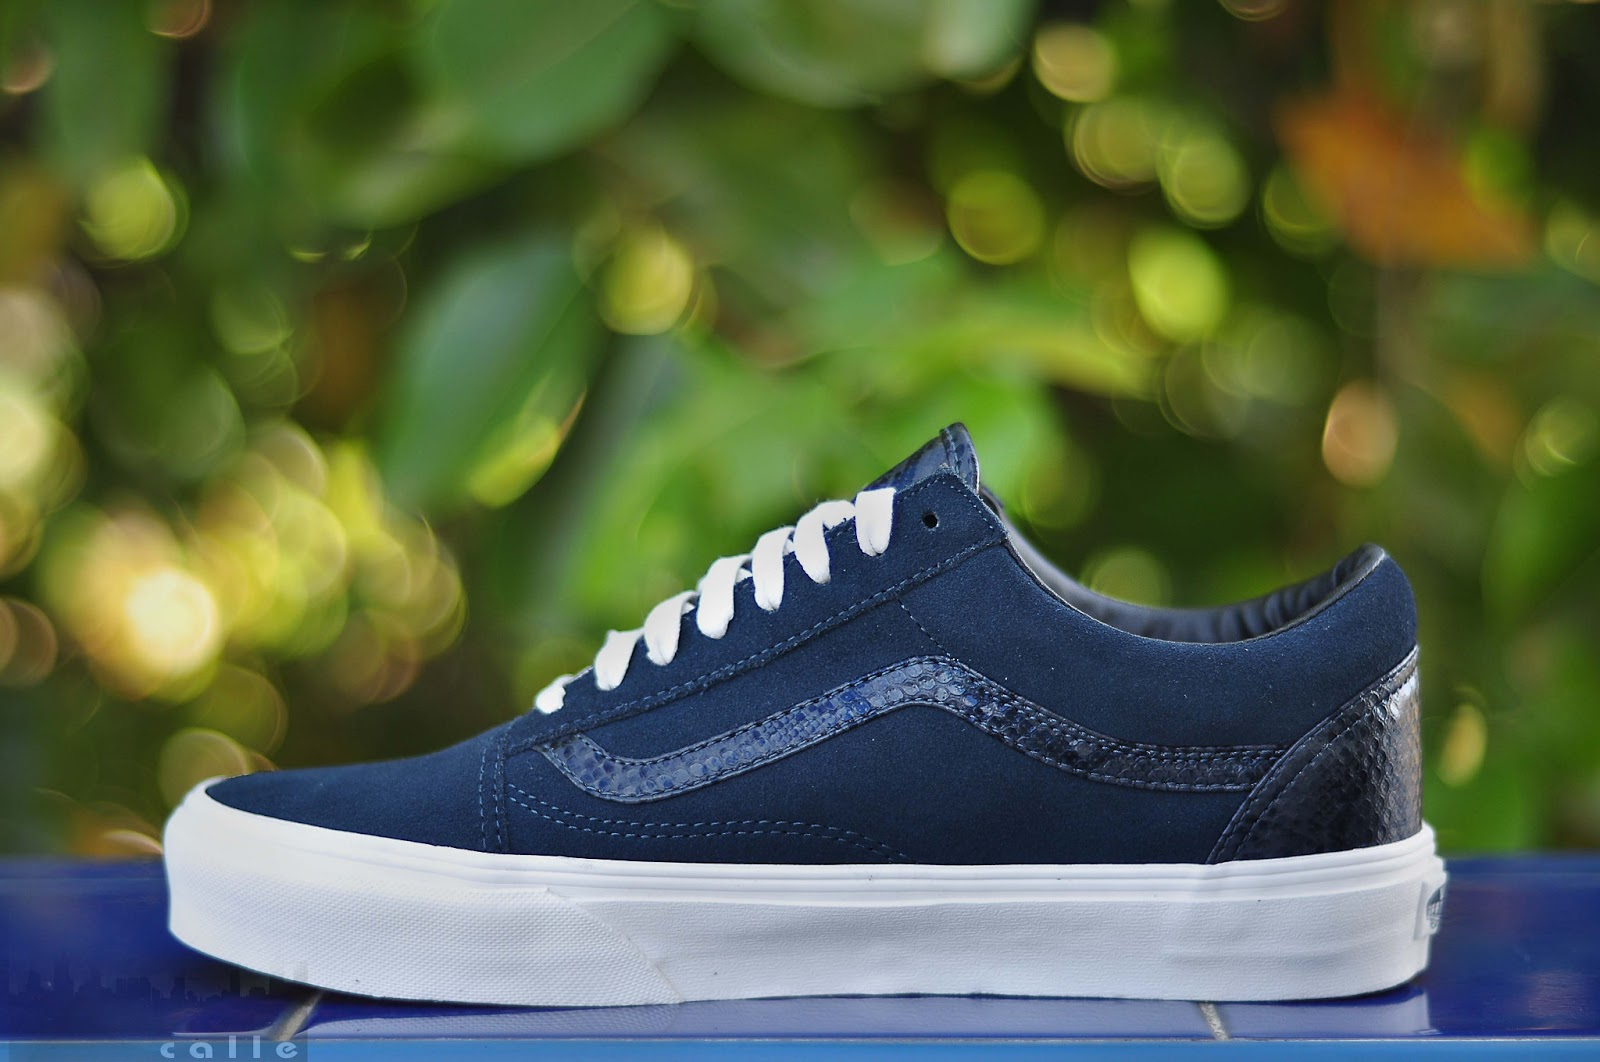 02544d3097 VANS OLDSKOOL YEAR OF THE SNAKE (NAVY BLUE)   SIZES  8-11   PRICE  3498    FREE SHIPPING NATIONWIDE